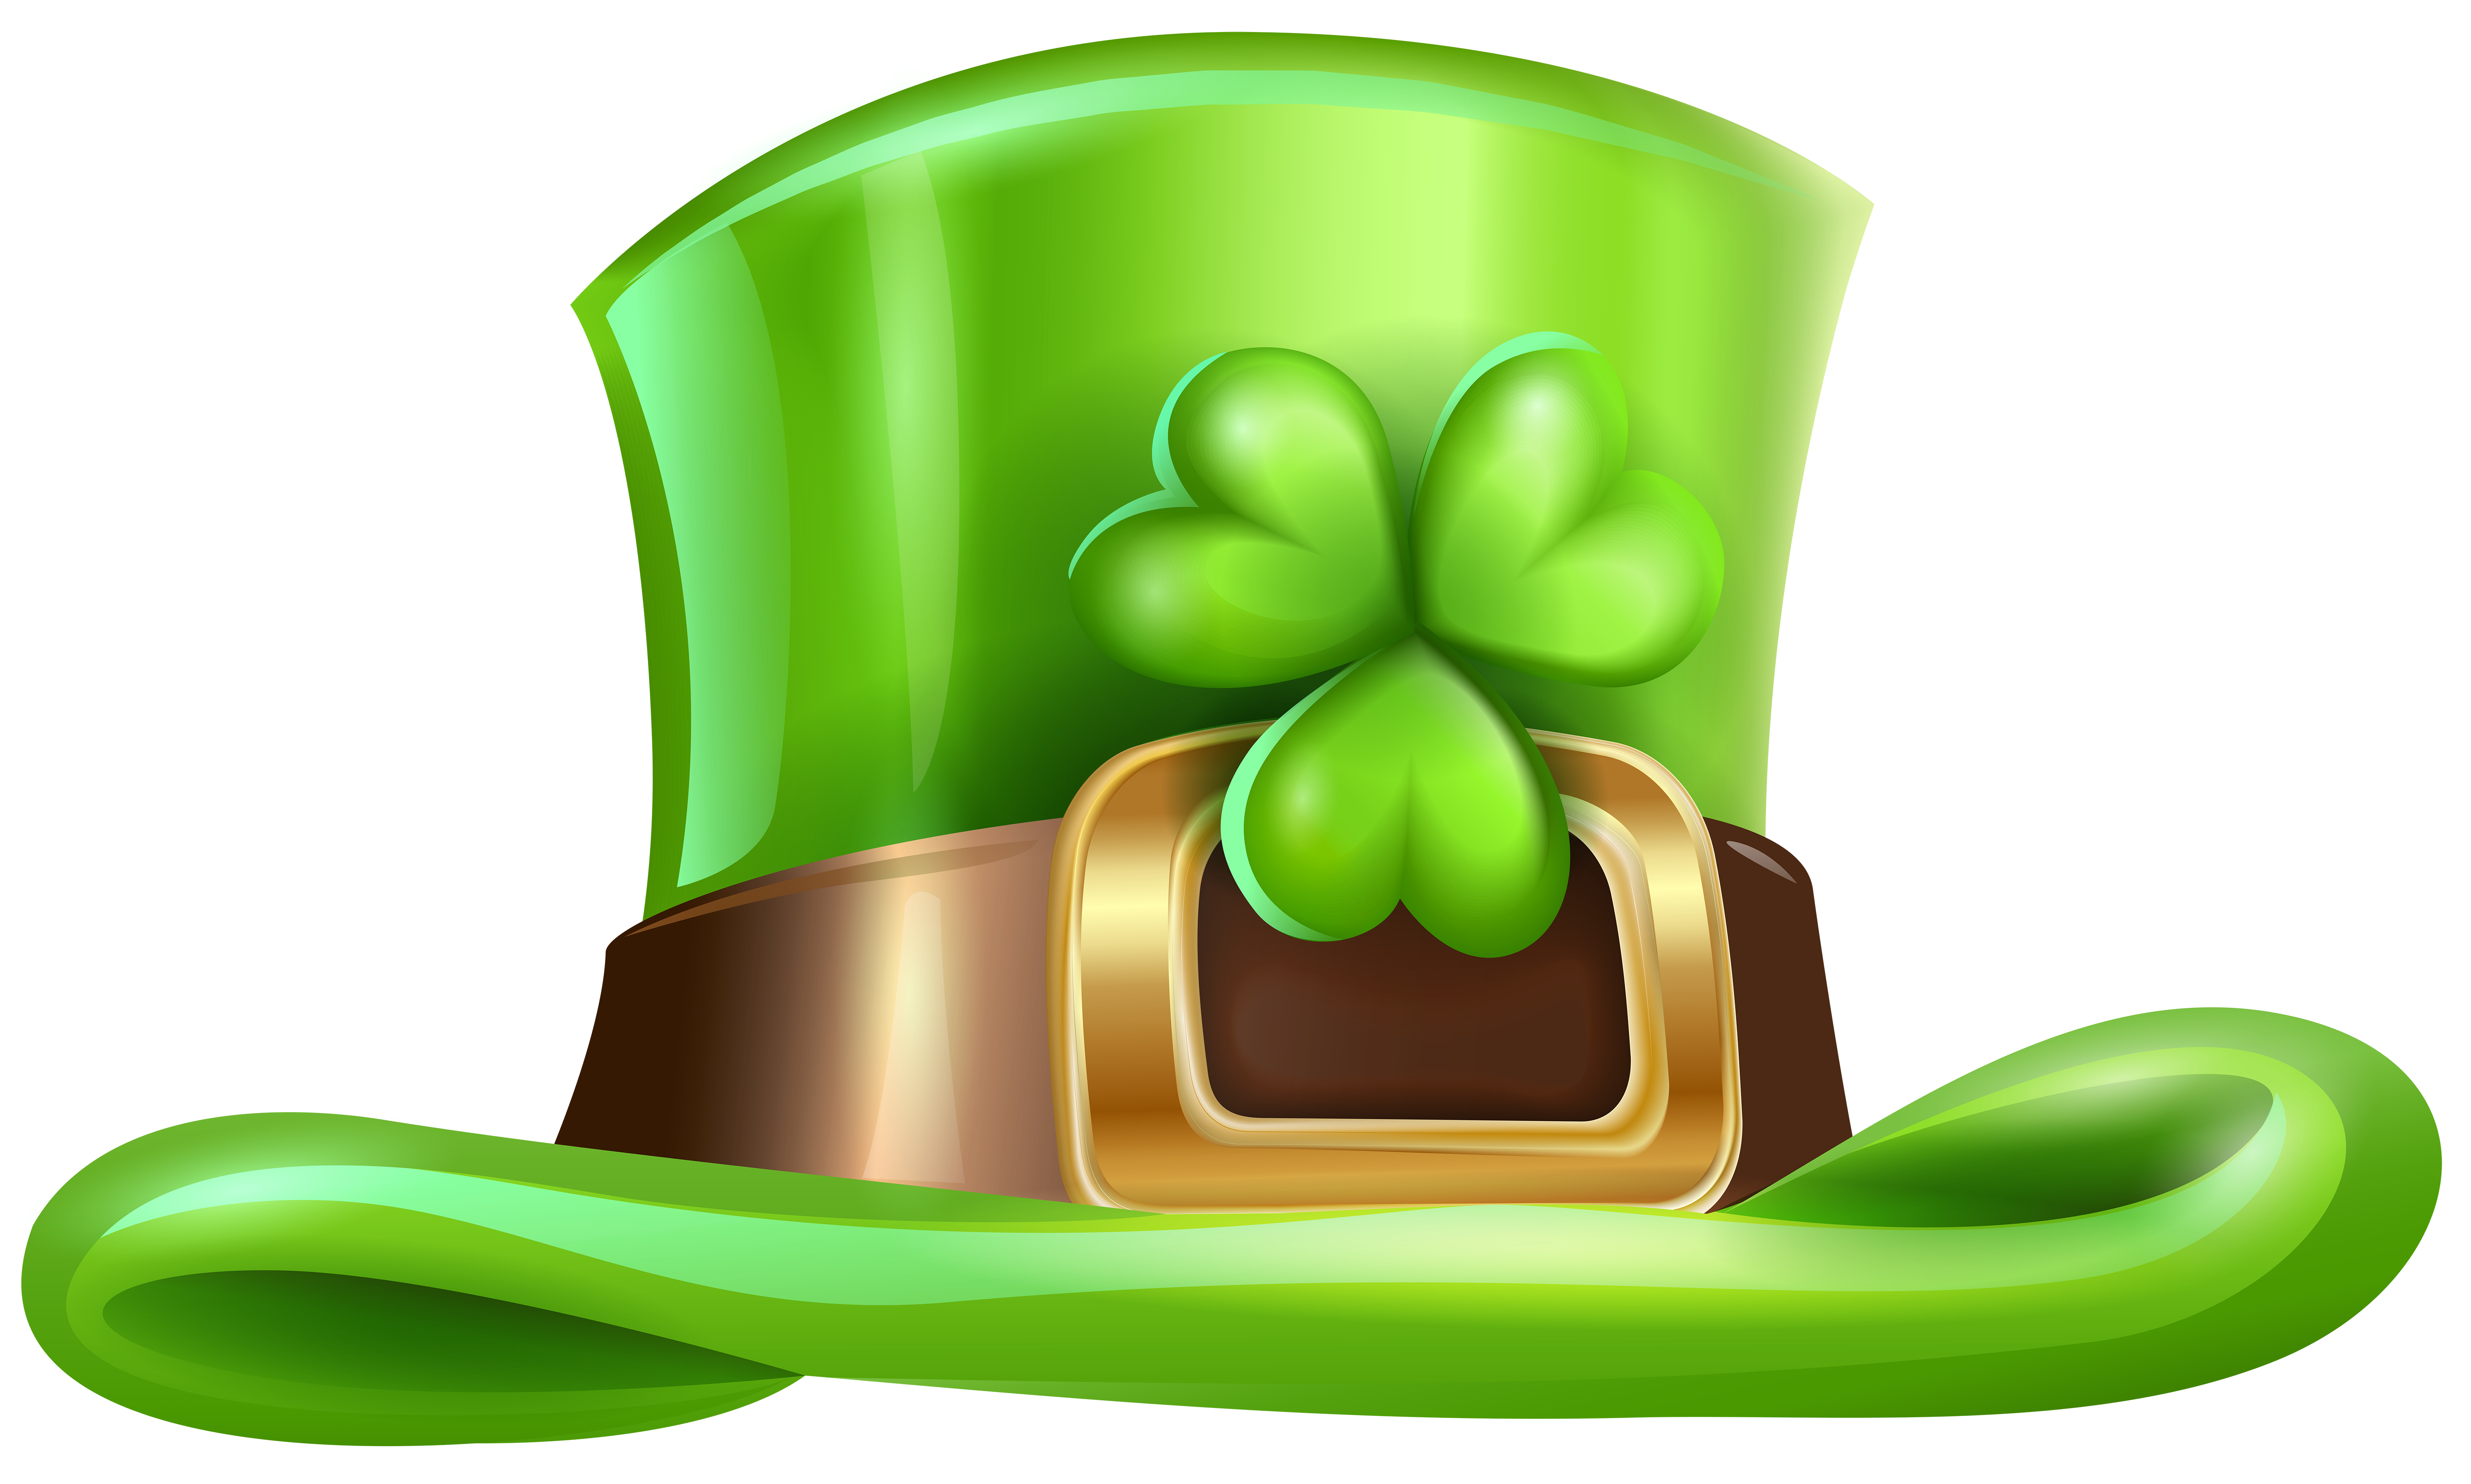 clip art library library St Patricks Day Hat with Shamrock Transparent PNG Clip Art Image